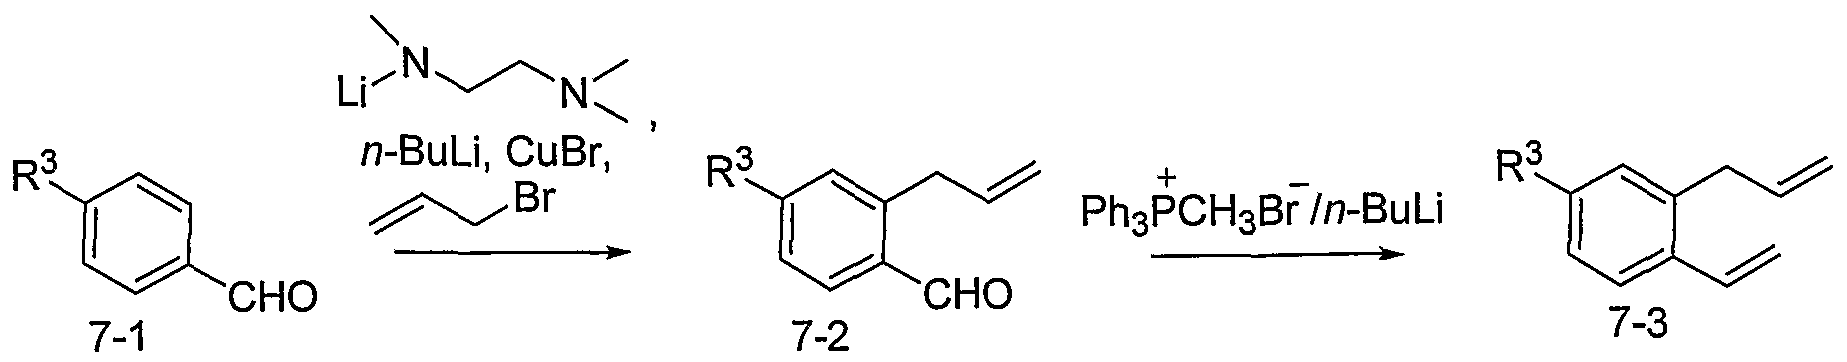 asymmetric epoxidation of dihydronaphthalene with a synthesized jacobsens catalyst The enantioselective epoxidation of three prochiral olefins over jacobsen's catalyst immobilized on al-mcm-41 and nh2-si-mcm-41 in the presence of in situ generated dmd as the oxygen source.